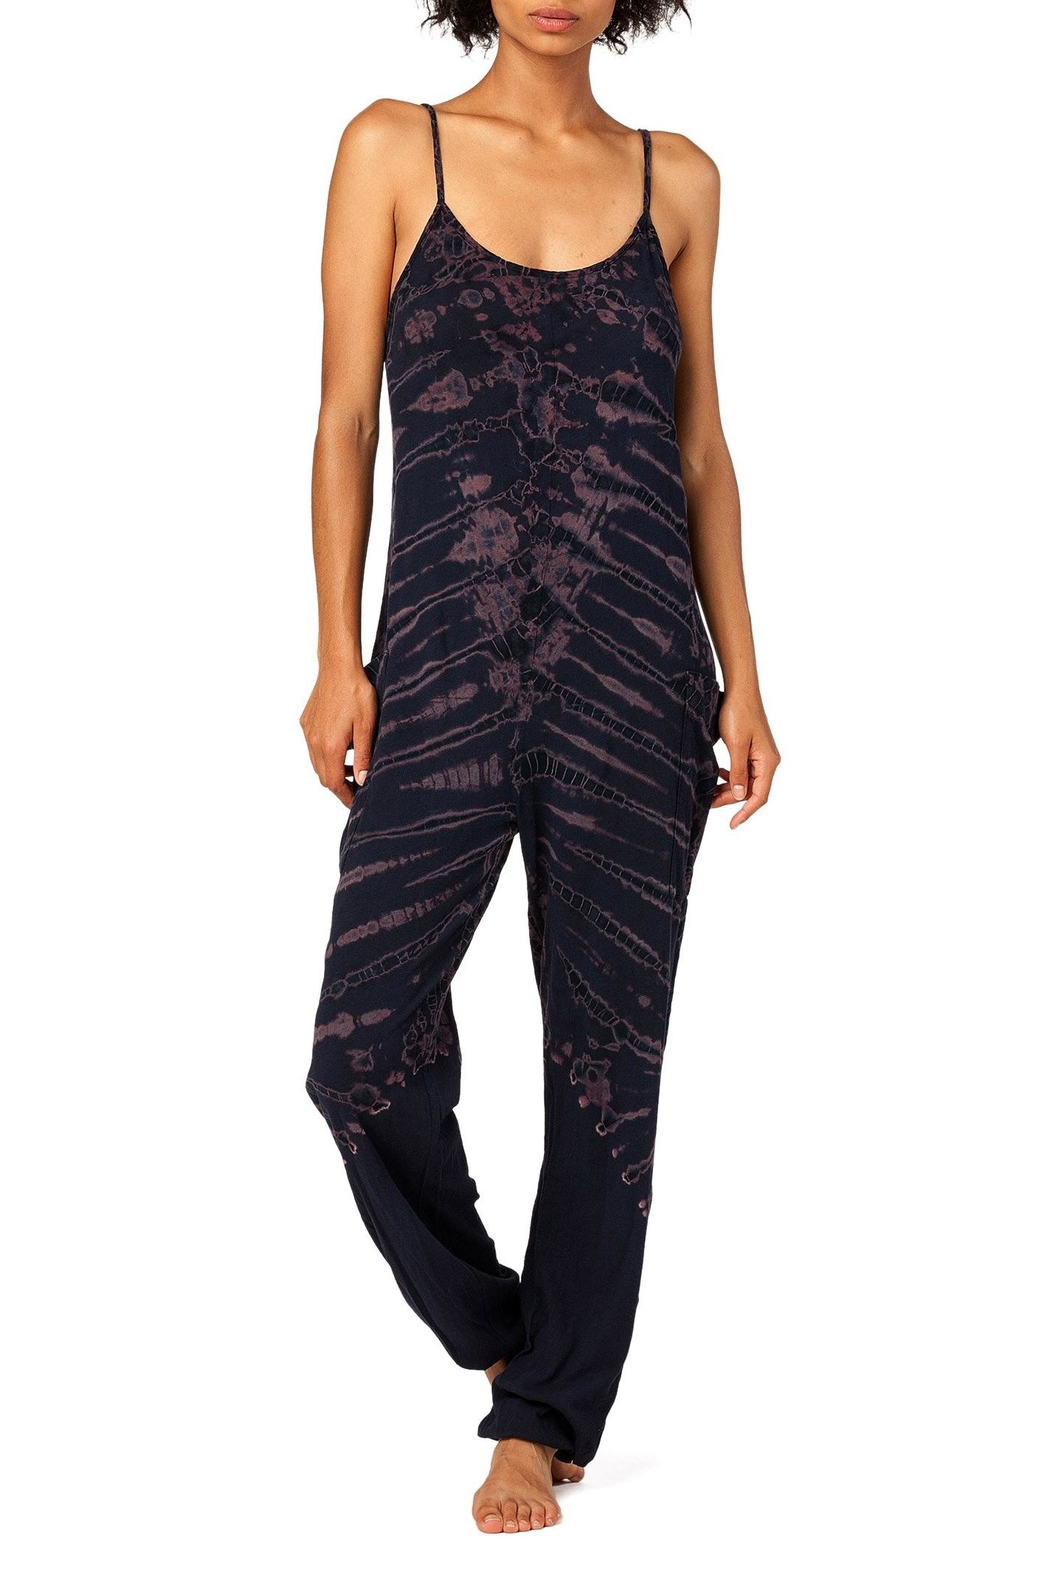 Electric & Rose Playa Jumpsuit - Front Cropped Image